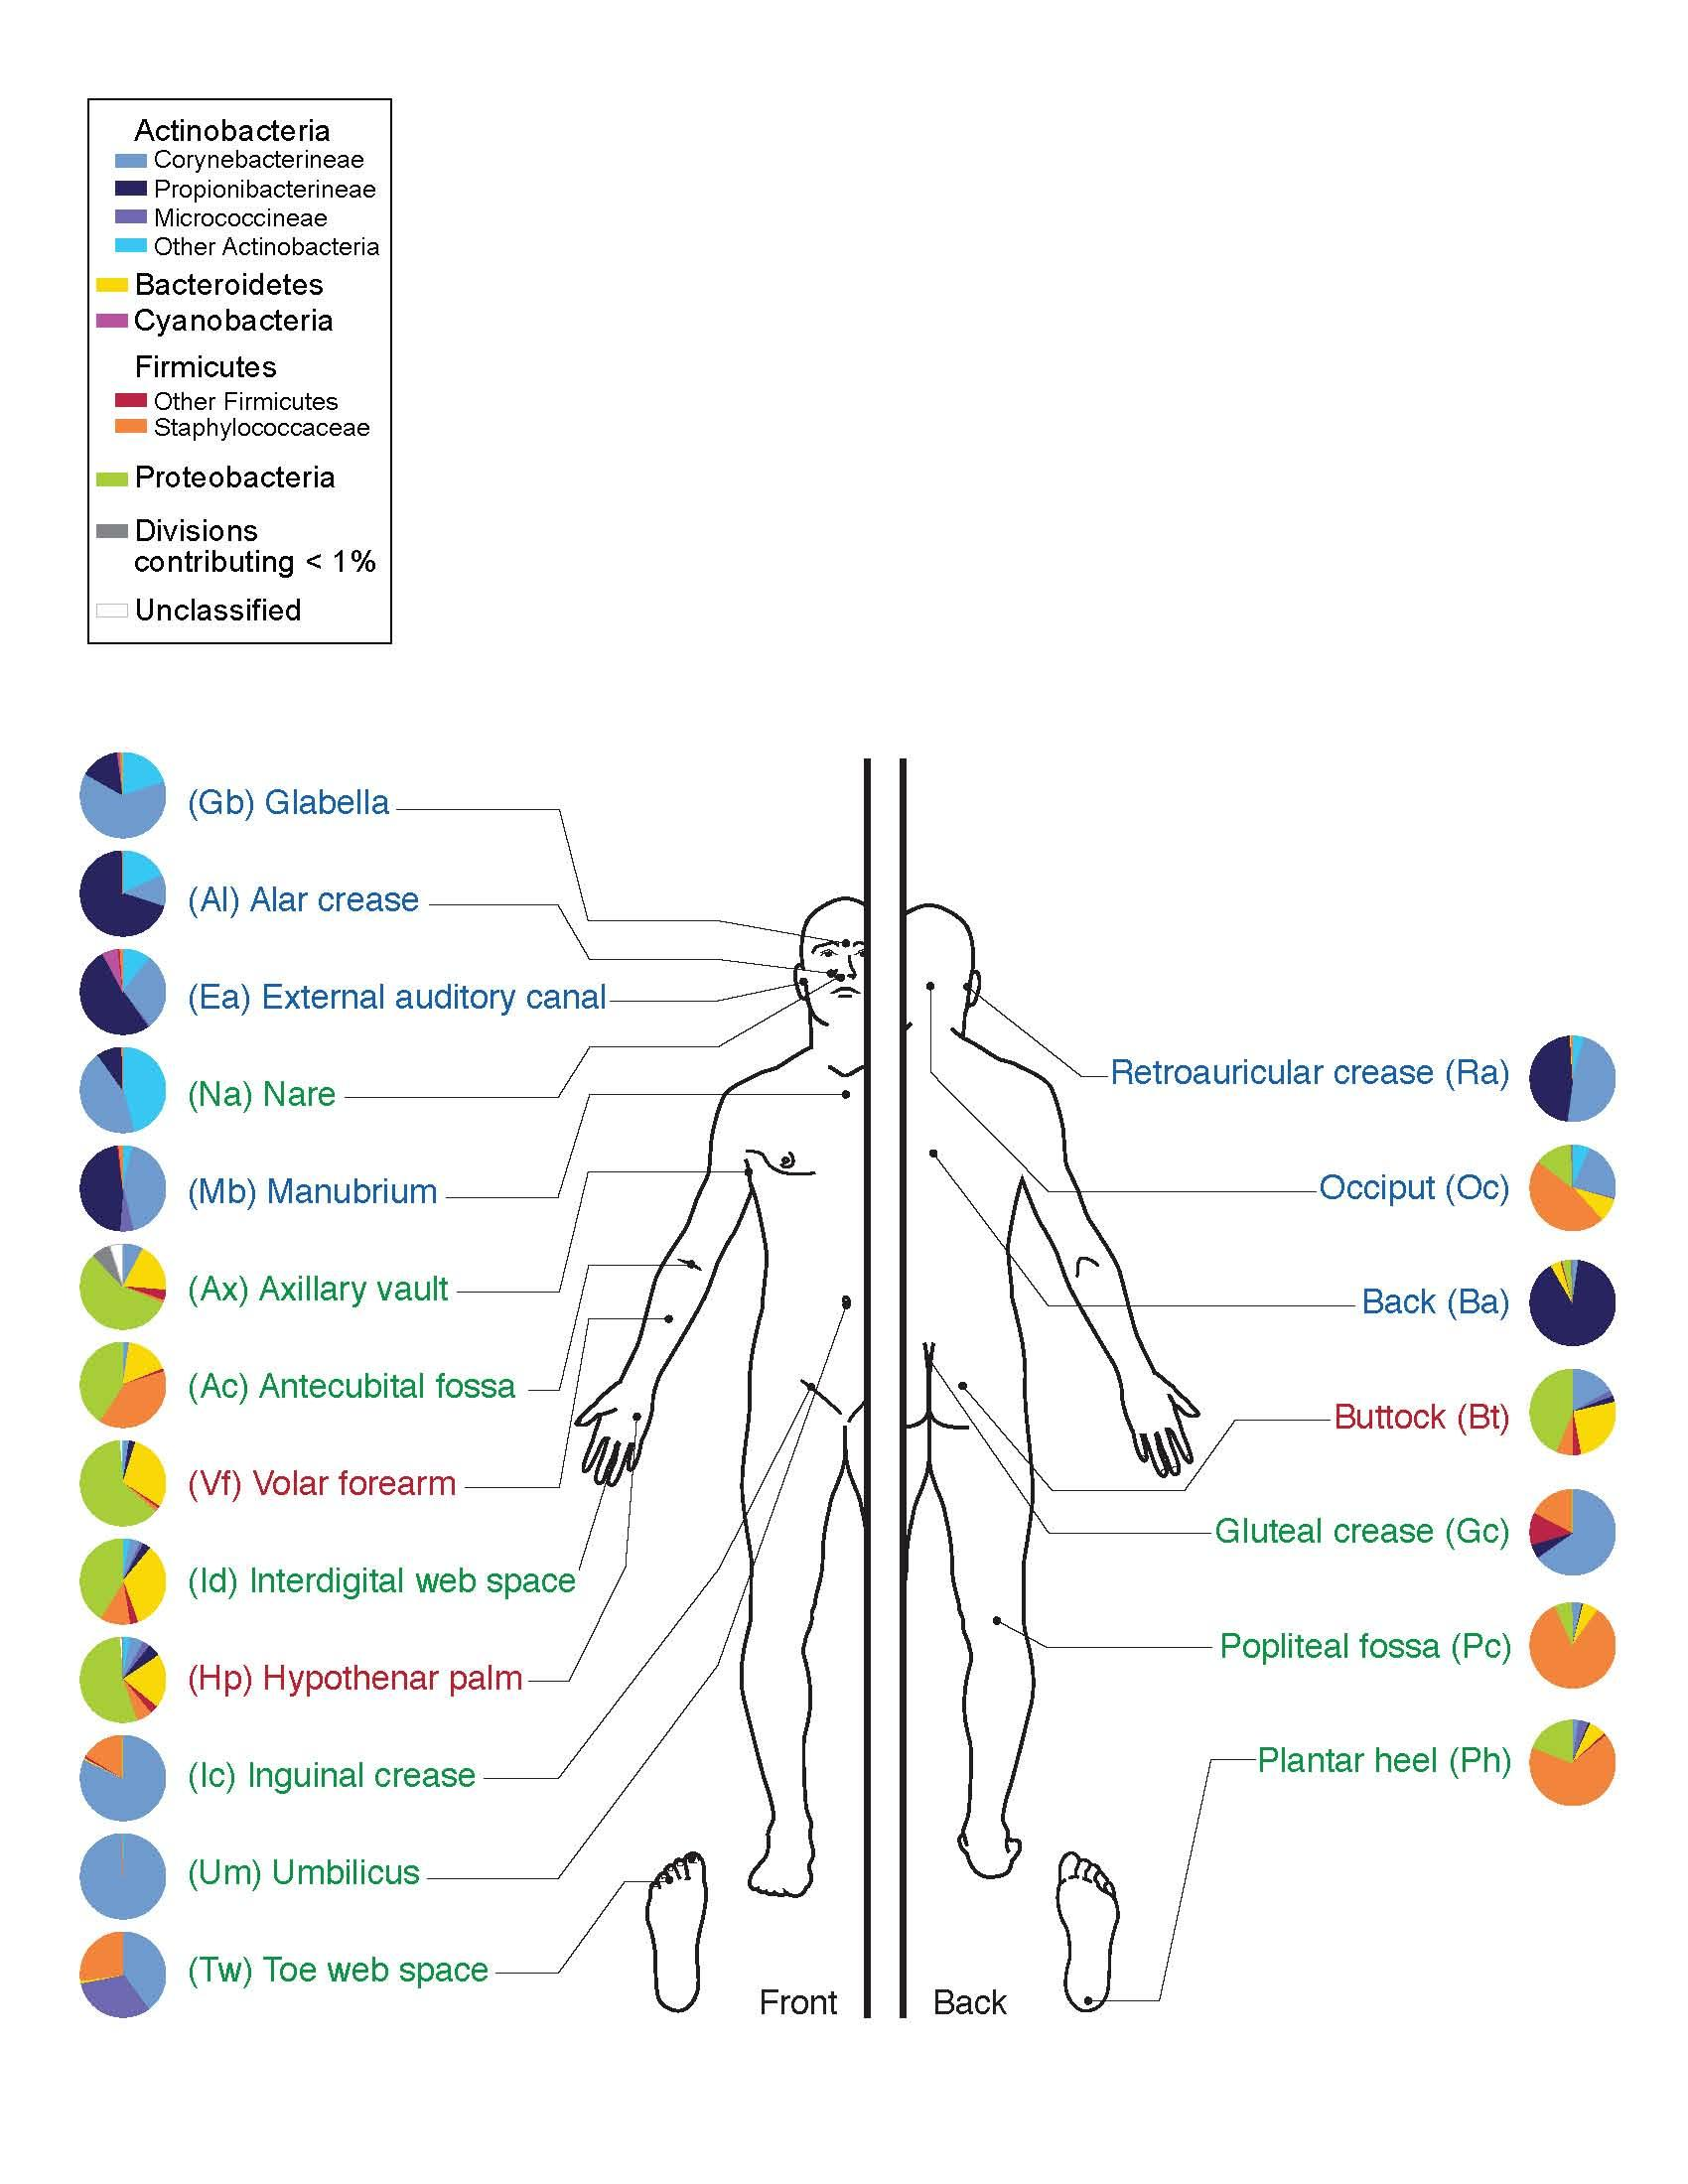 The Human Skin Microbiome Project